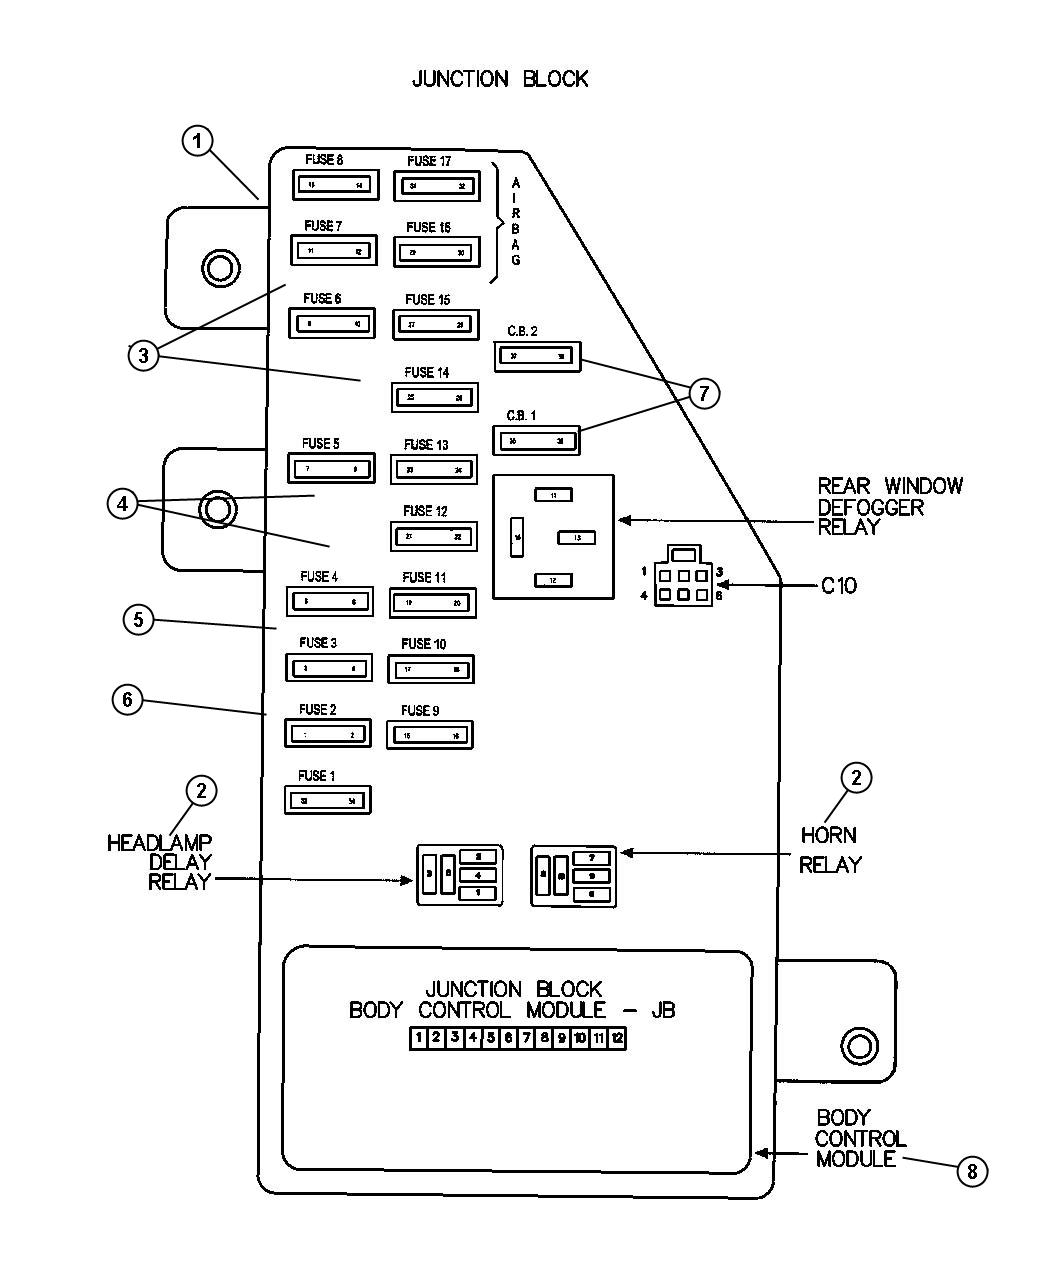 [WRG-7488] 2002 Suburban Blower Motor Wiring Diagram